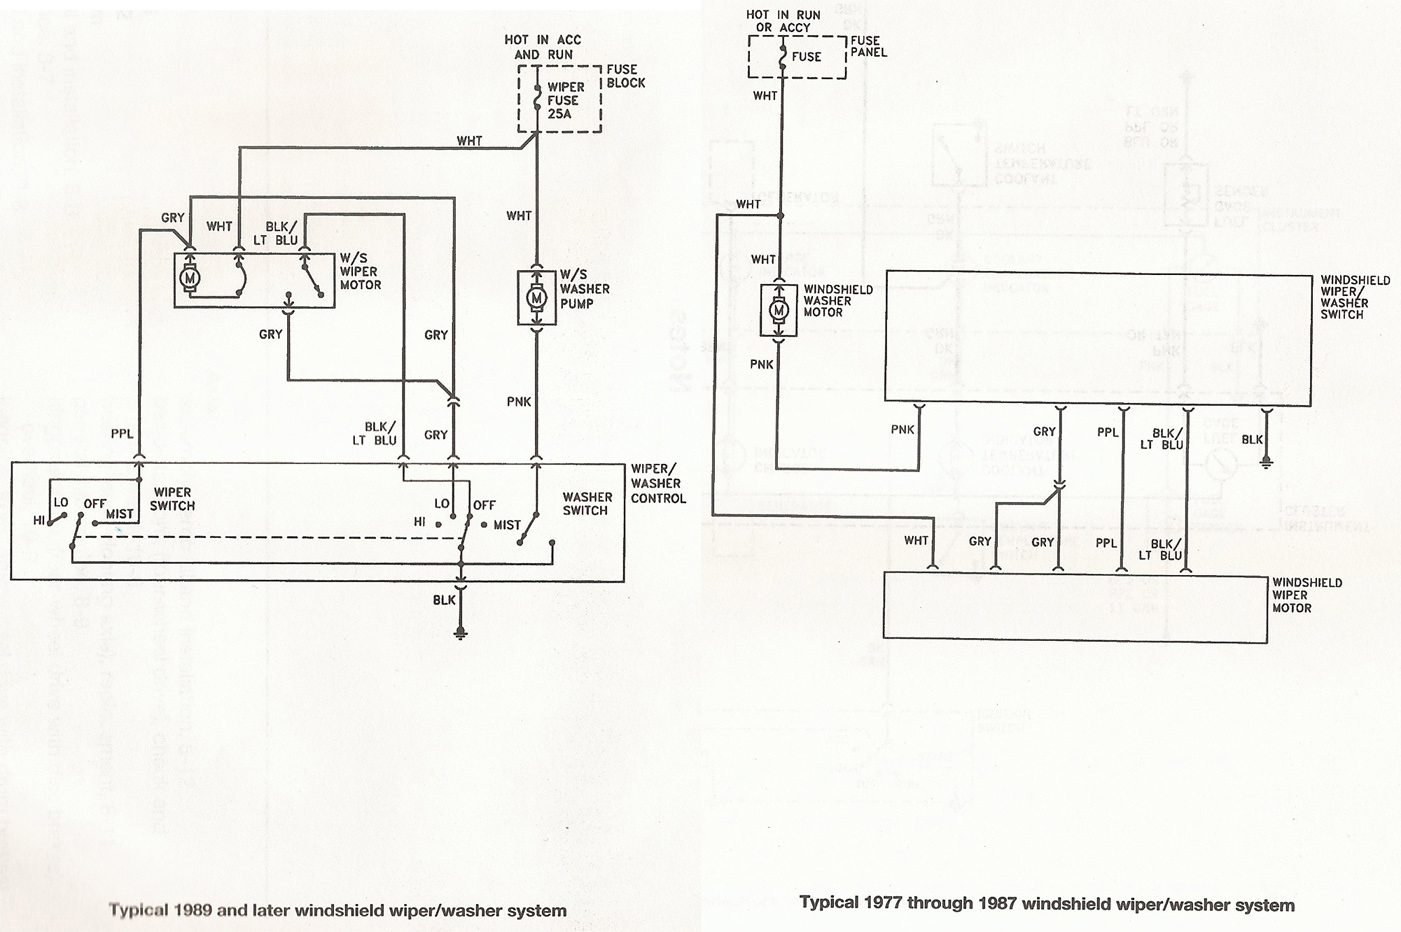 hight resolution of 88 k5 blazer wiring diagram another blog about wiring diagram u2022 rh ok2 infoservice ru 1987